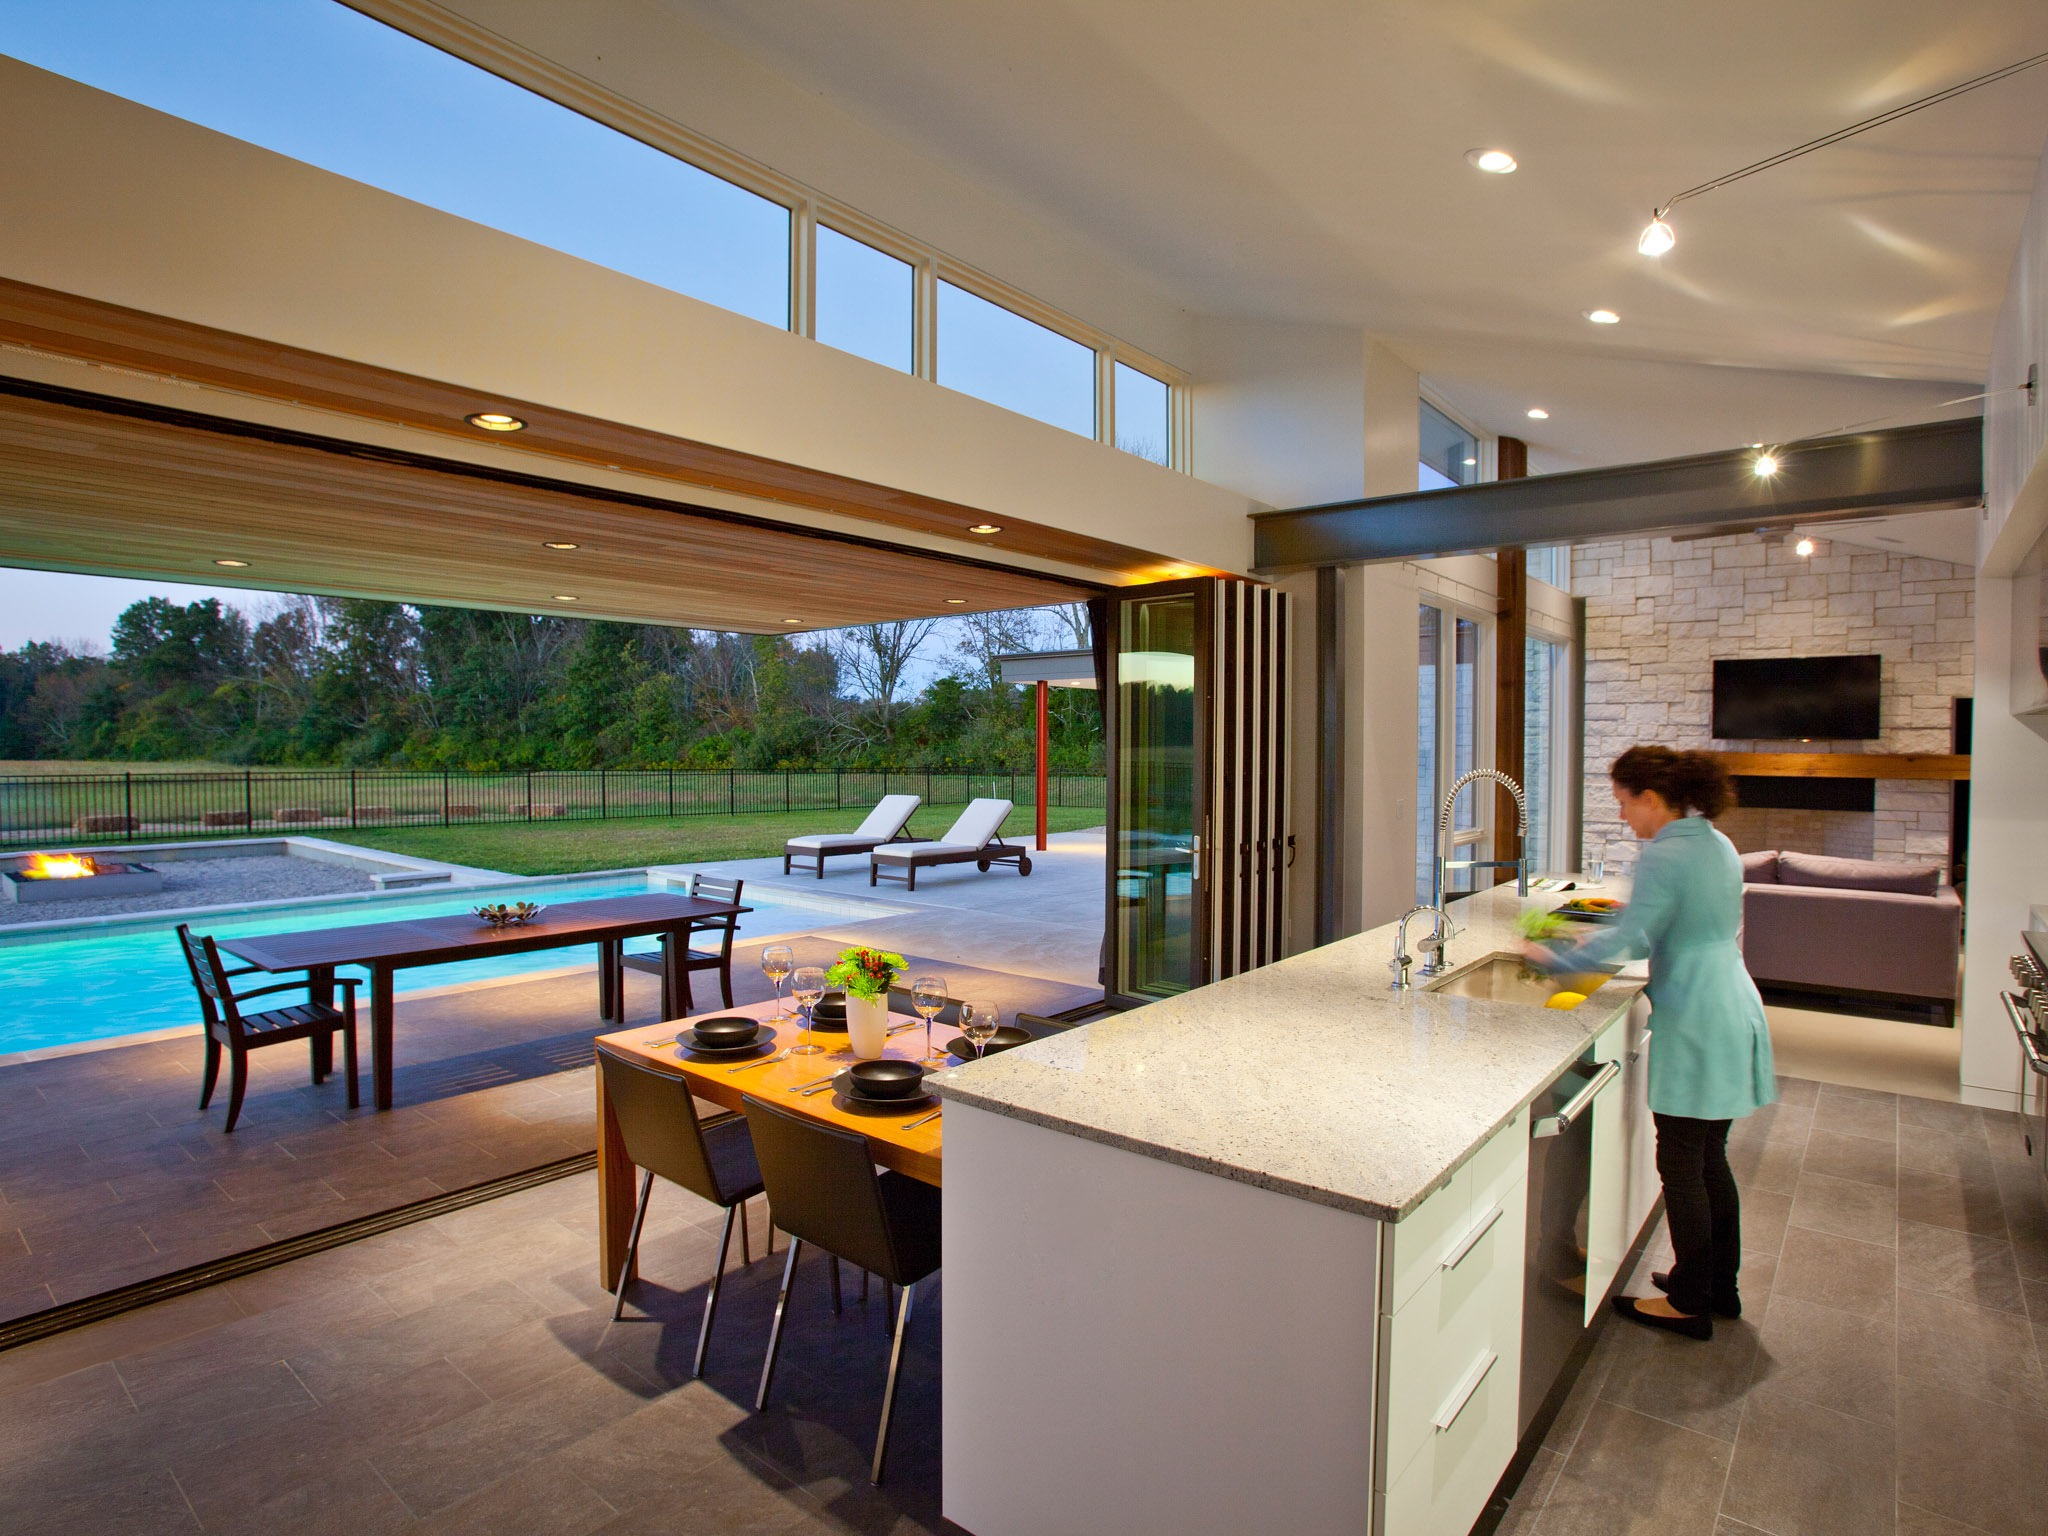 Contemporary Kitchen With Bifolding Glass Doors Open To Swimming Pool And Patio (View 7 of 24)